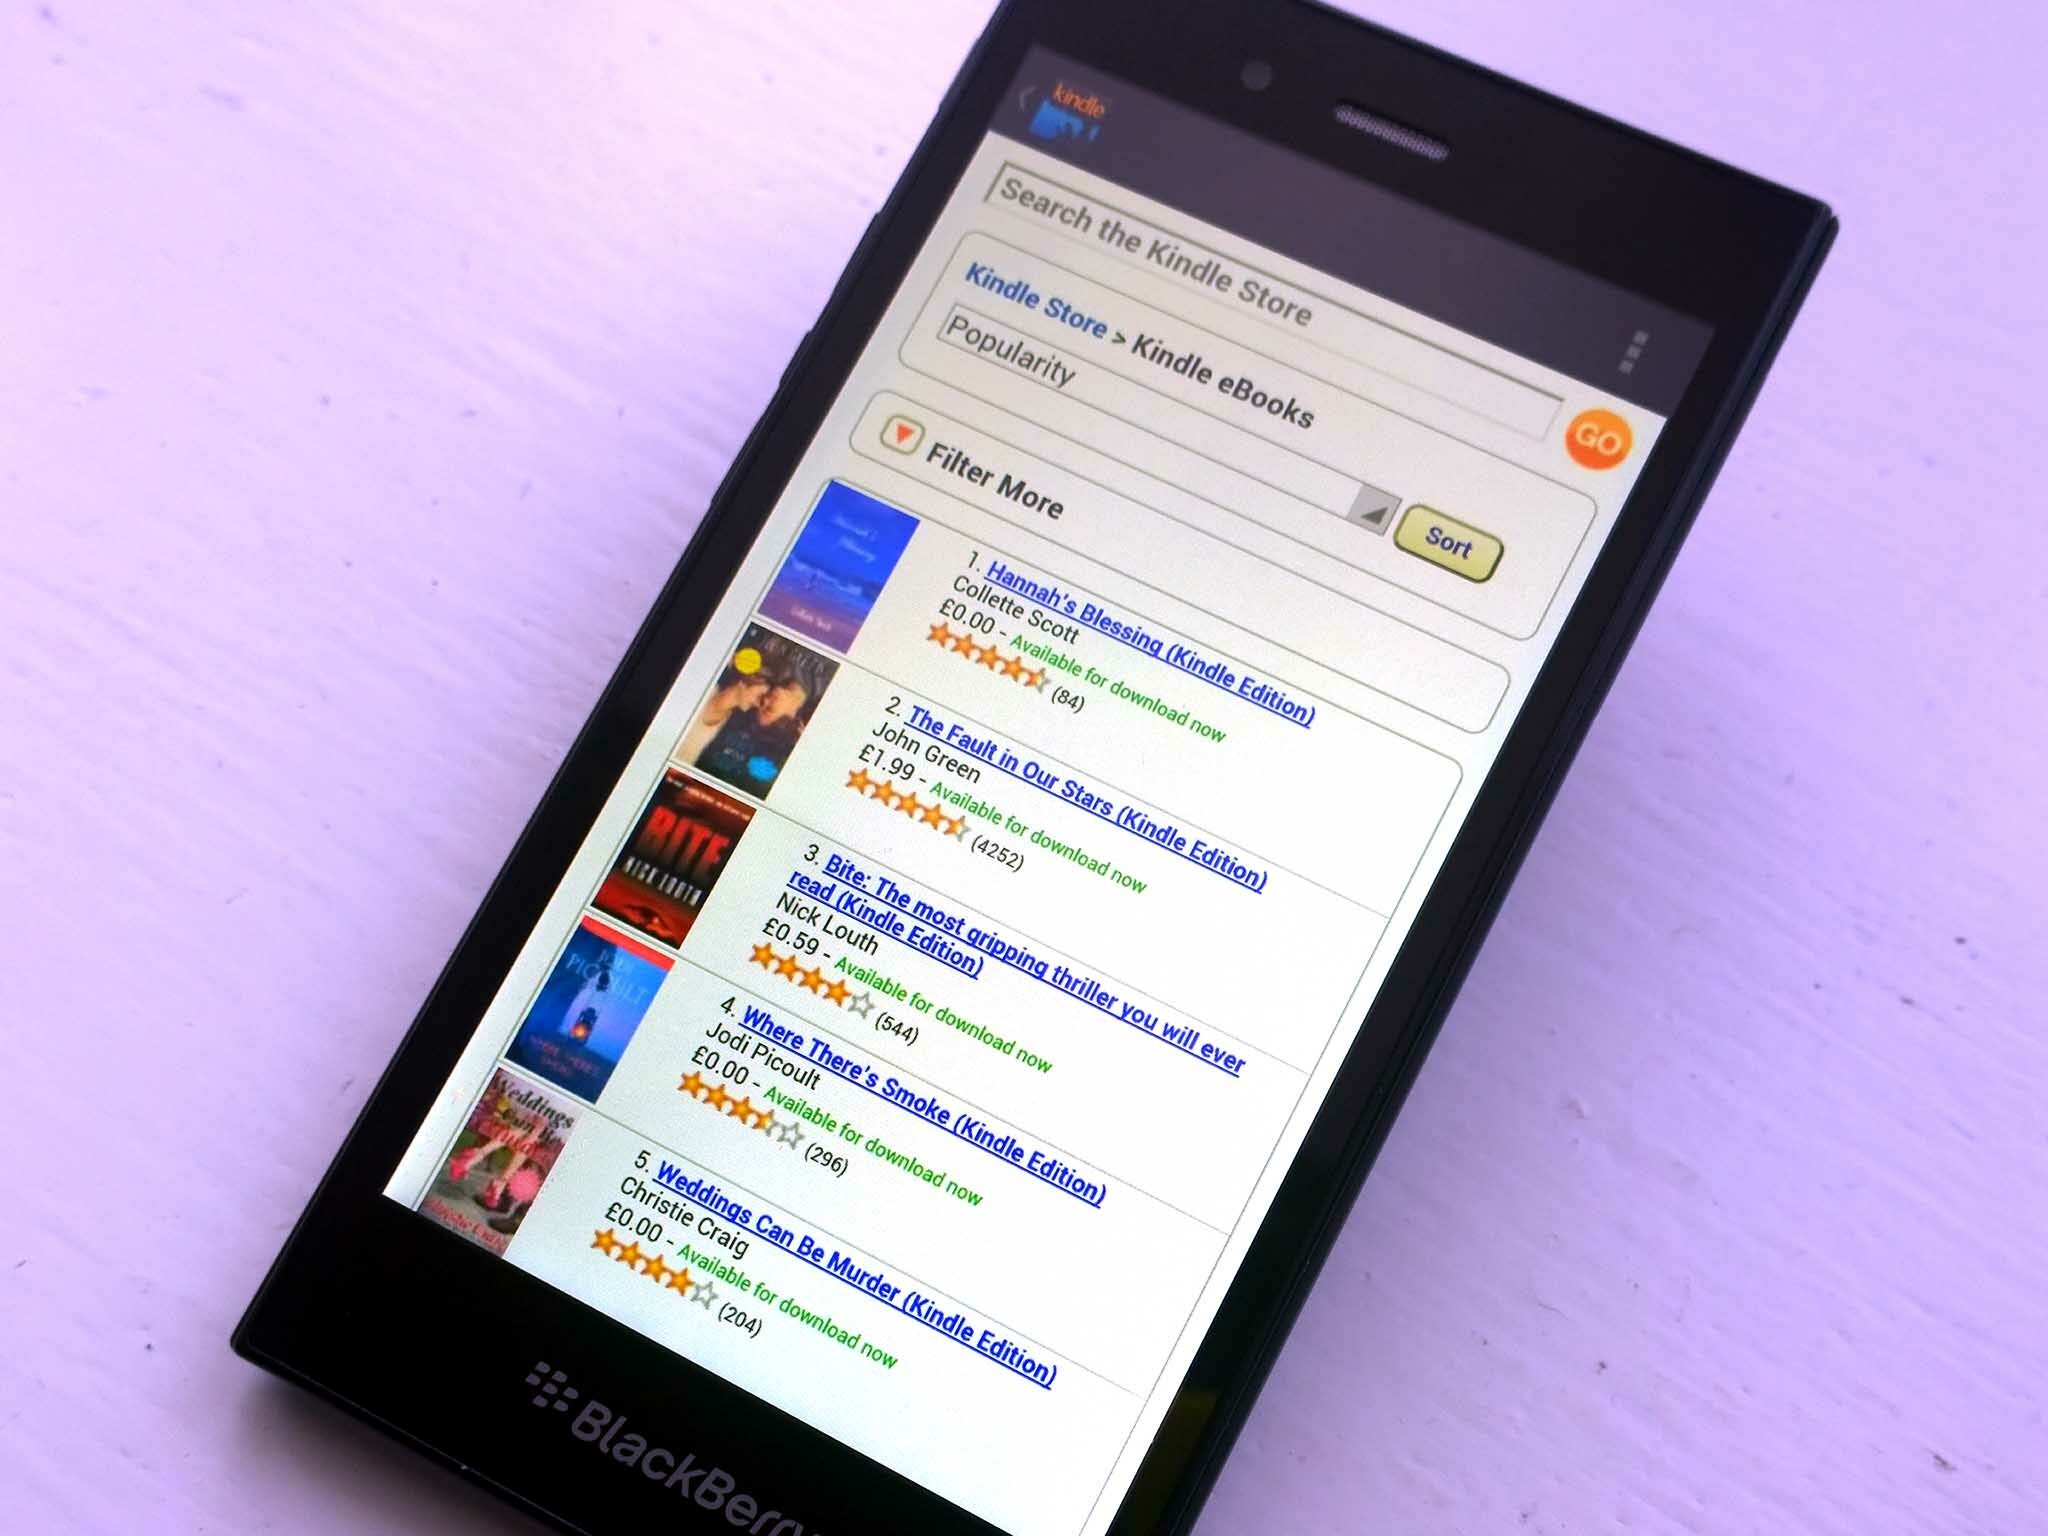 Amazon launches Kindle Unlimited, a new ebook rental service for $9.99 a month